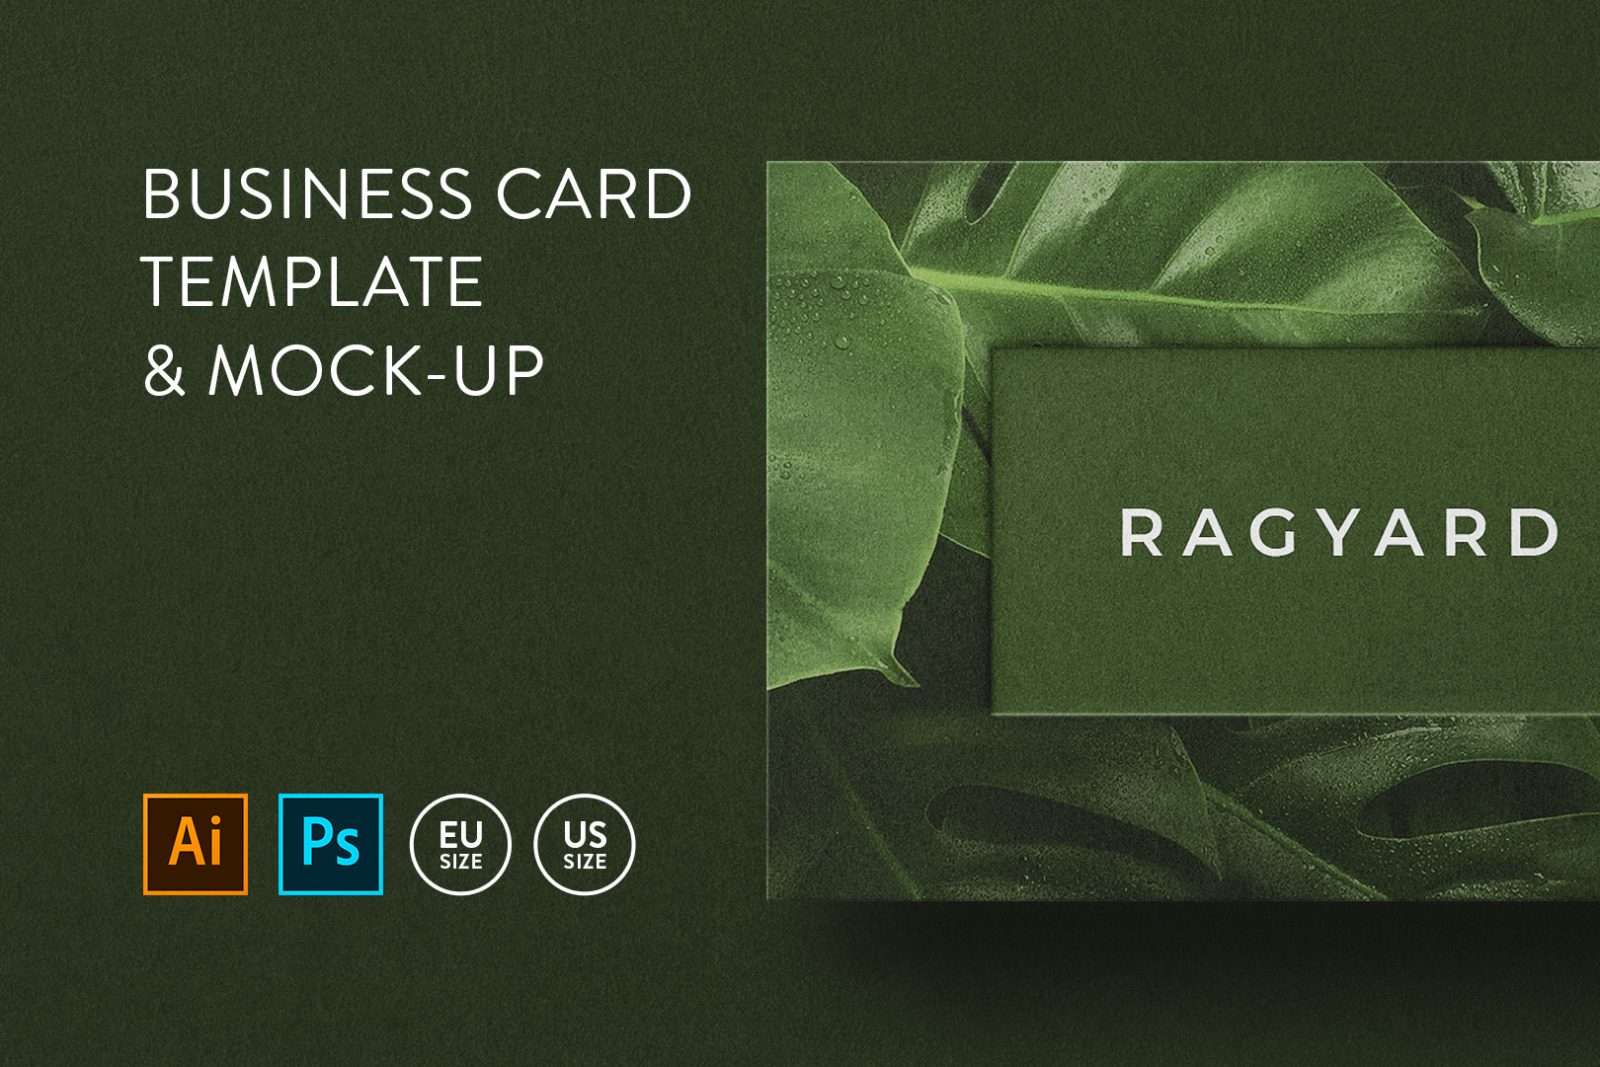 Business card Template & Mock-up #28